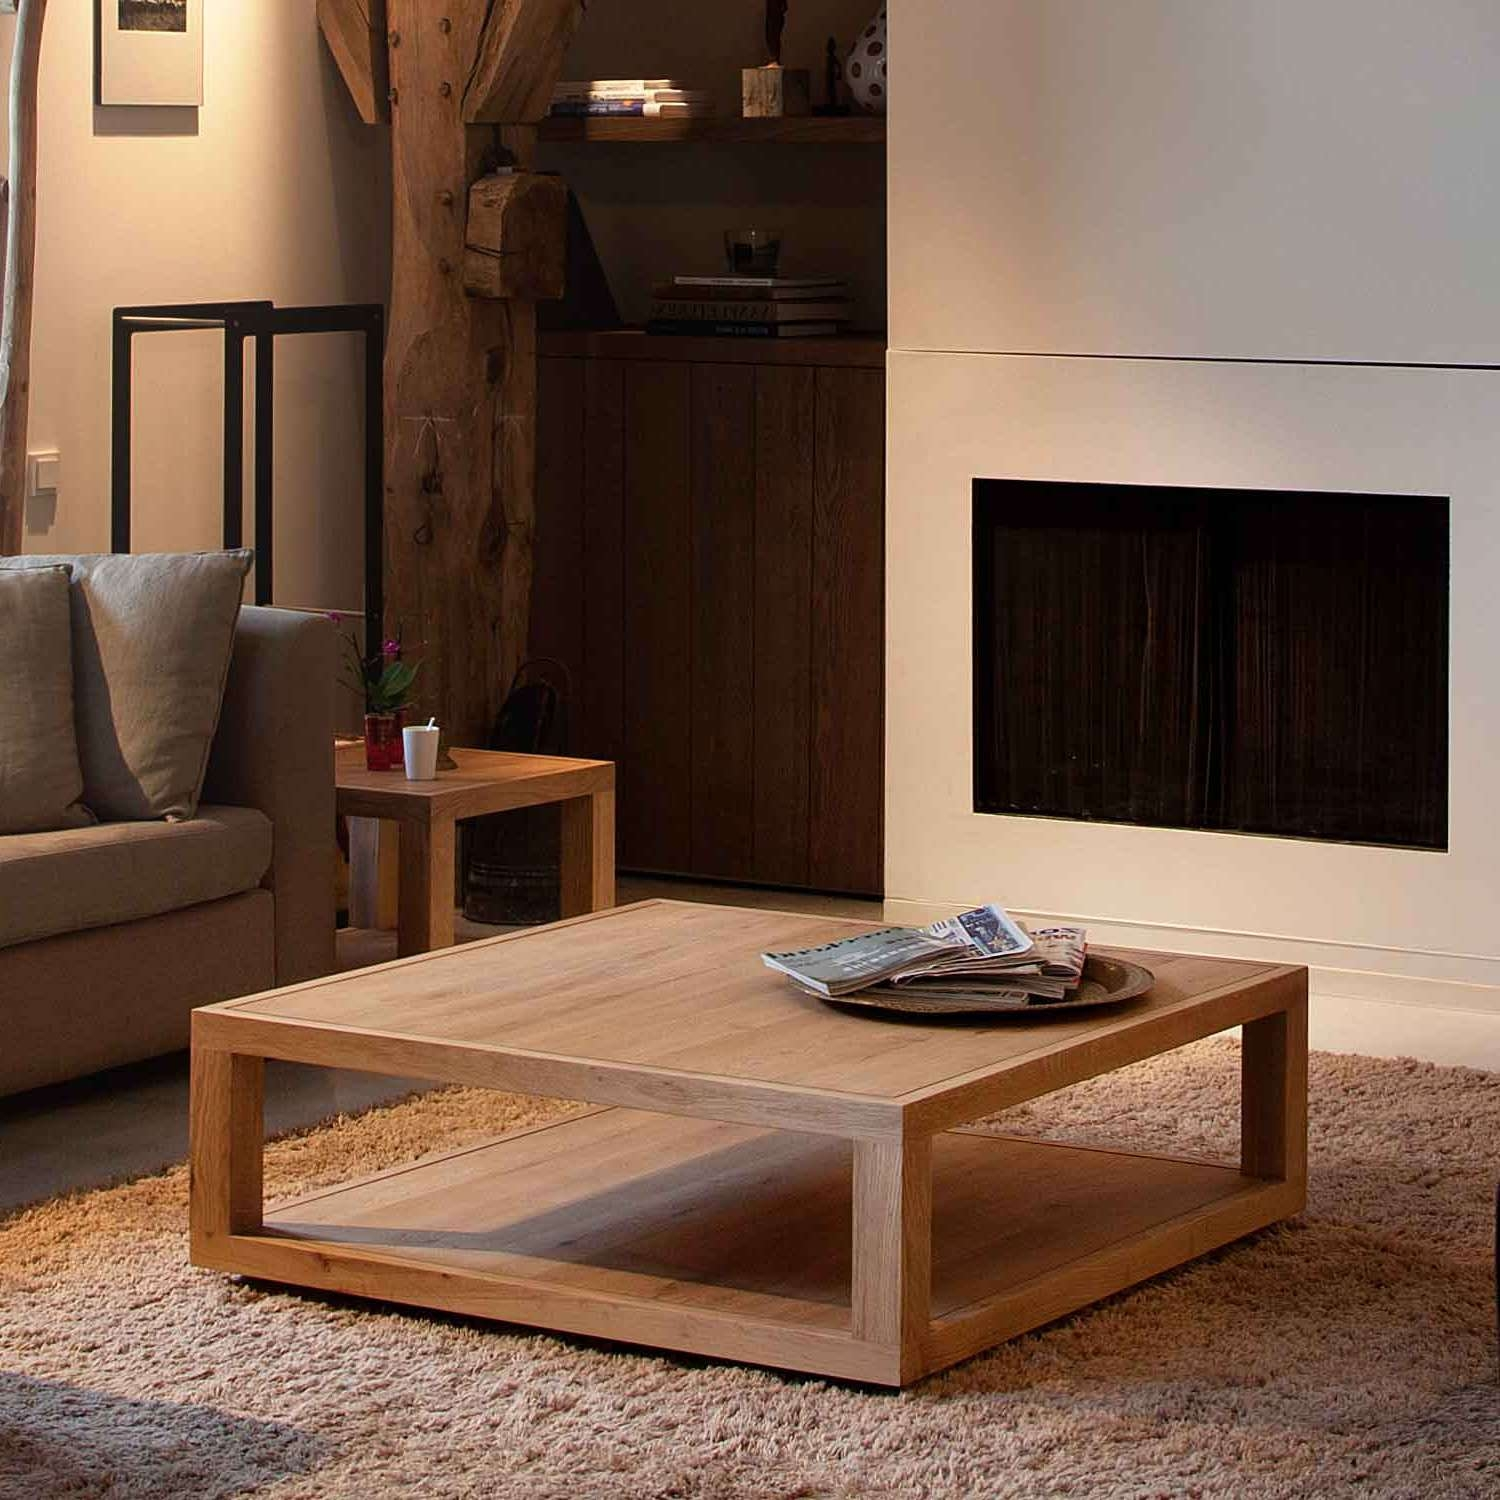 Custom Diy Low Square Wood Oak Coffee Table With Tray And Throughout Current Square Low Coffee Tables (View 8 of 20)